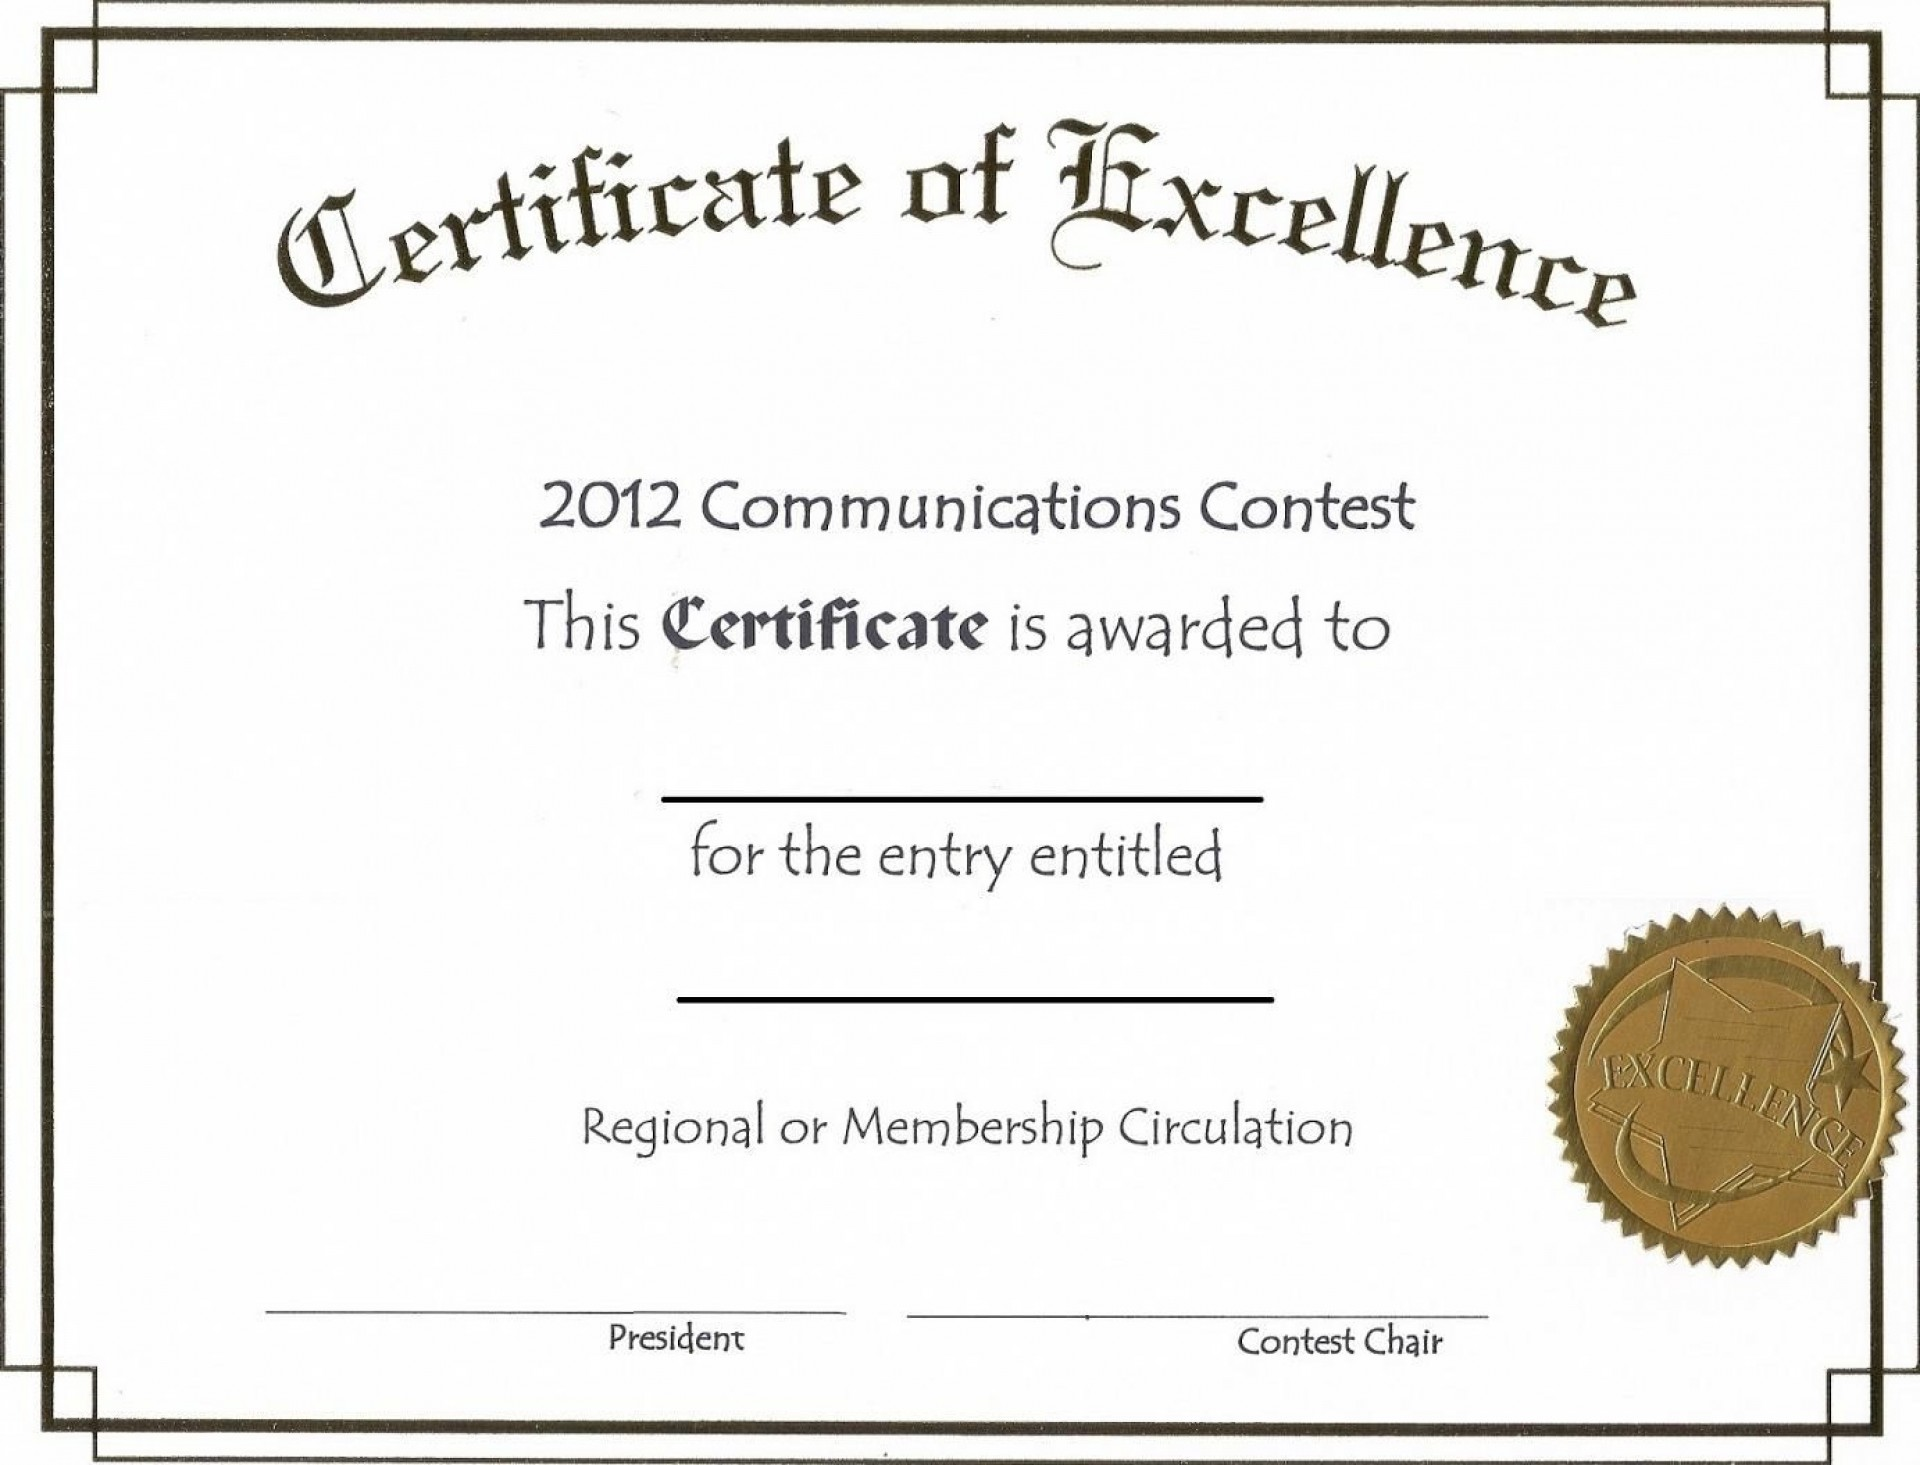 000 Dreaded Microsoft Word Certificate Template Image  2003 Award M Appreciation Of Authenticity1920